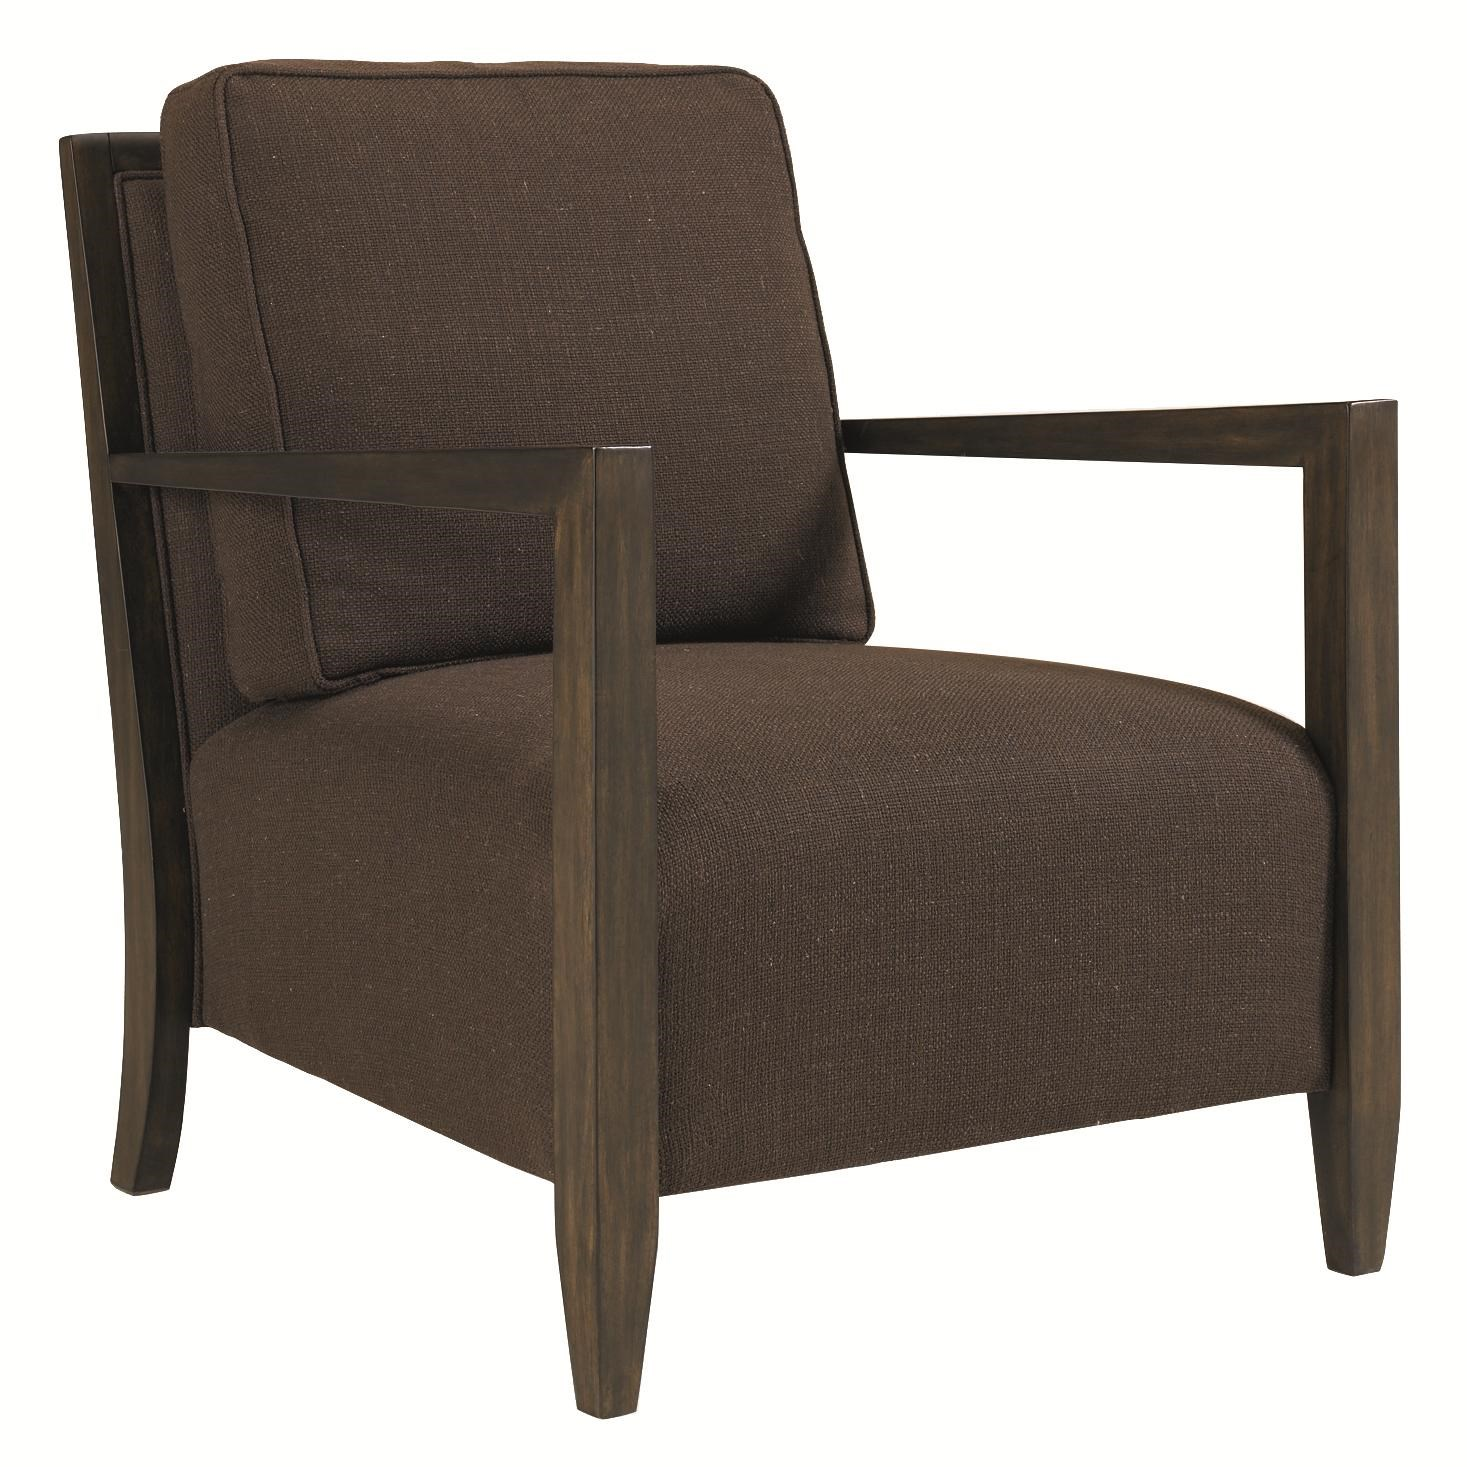 Schnadig Modern Artisan Linear Chair With Exposed Wood Frame